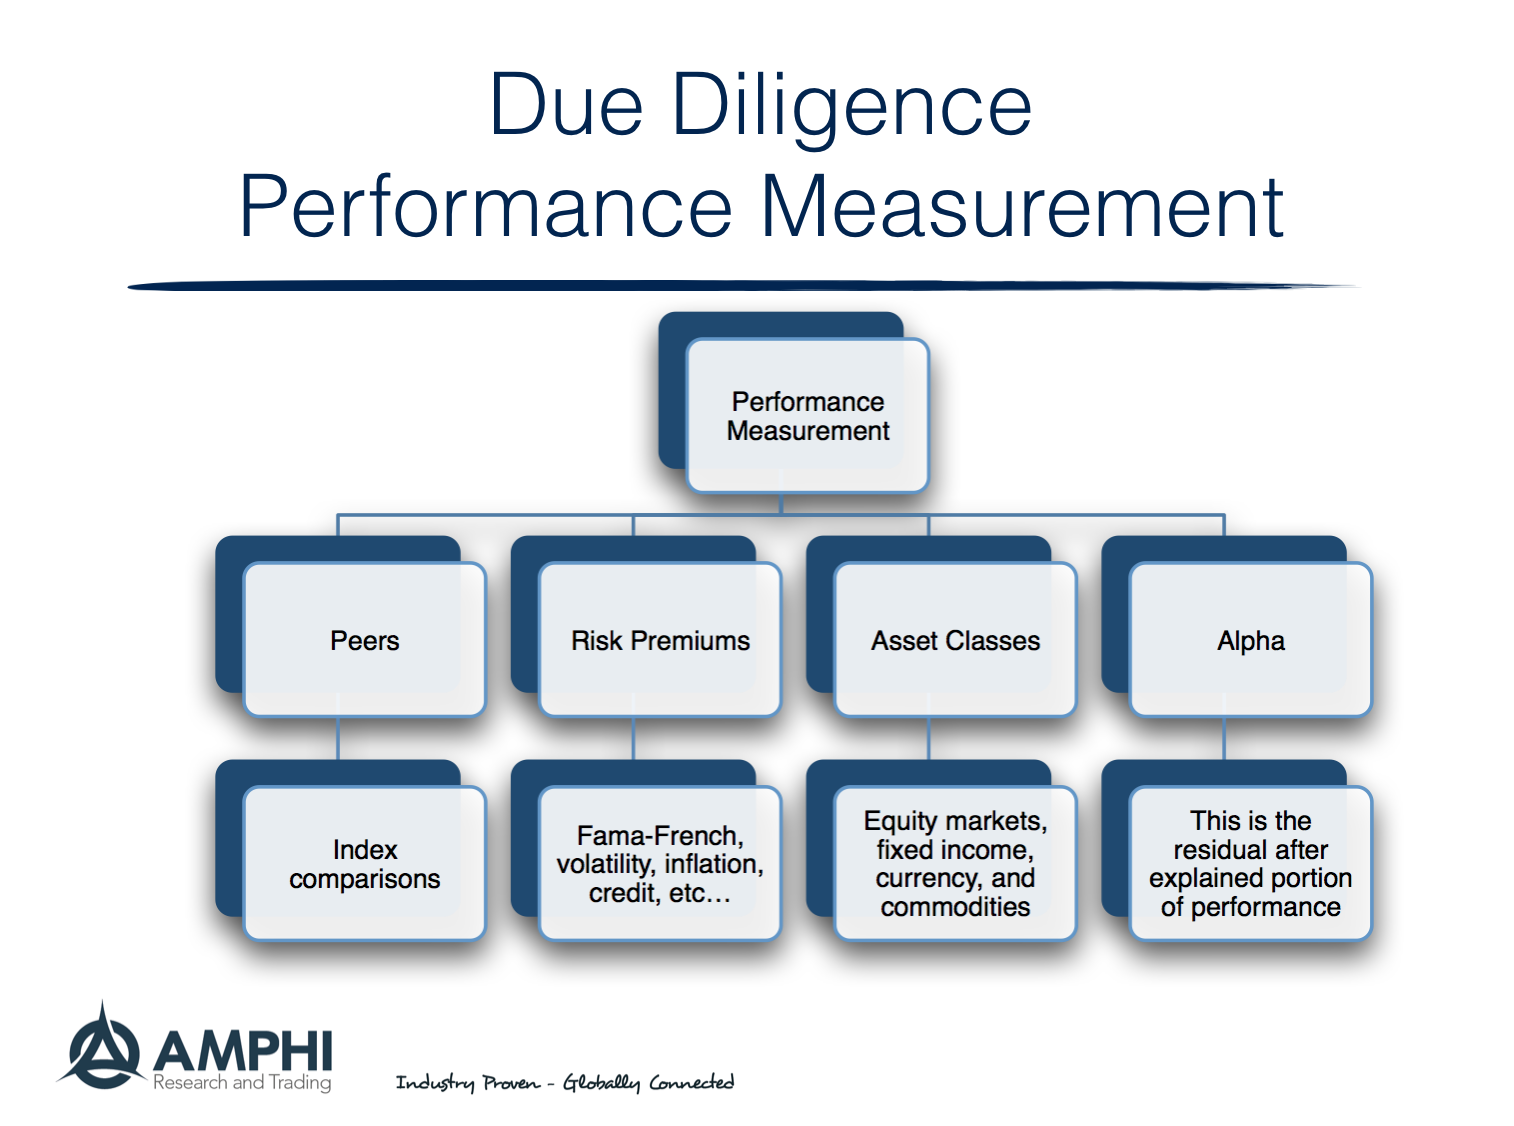 Enhanced due diligence (edd) | sumsub.com